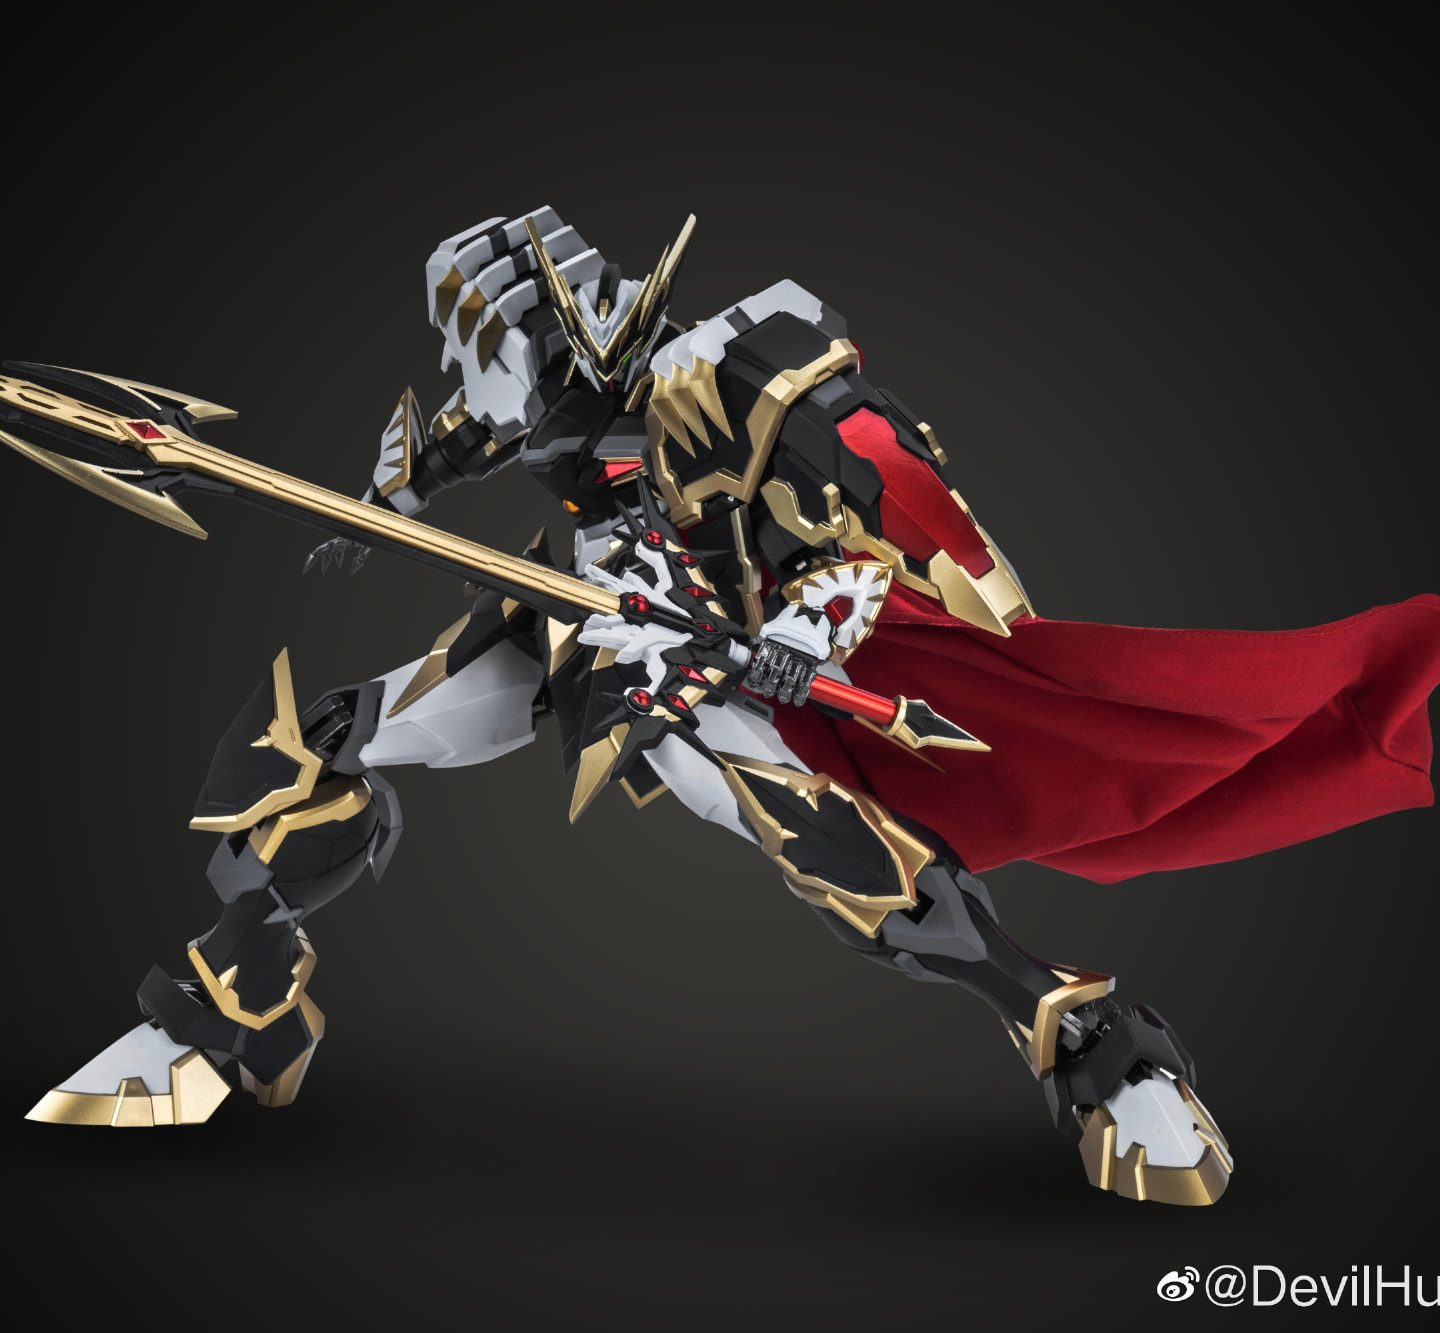 [Devil Hunter] DH-04 Blade Dragon Emperor (Diecast Action Figure) opens for PO